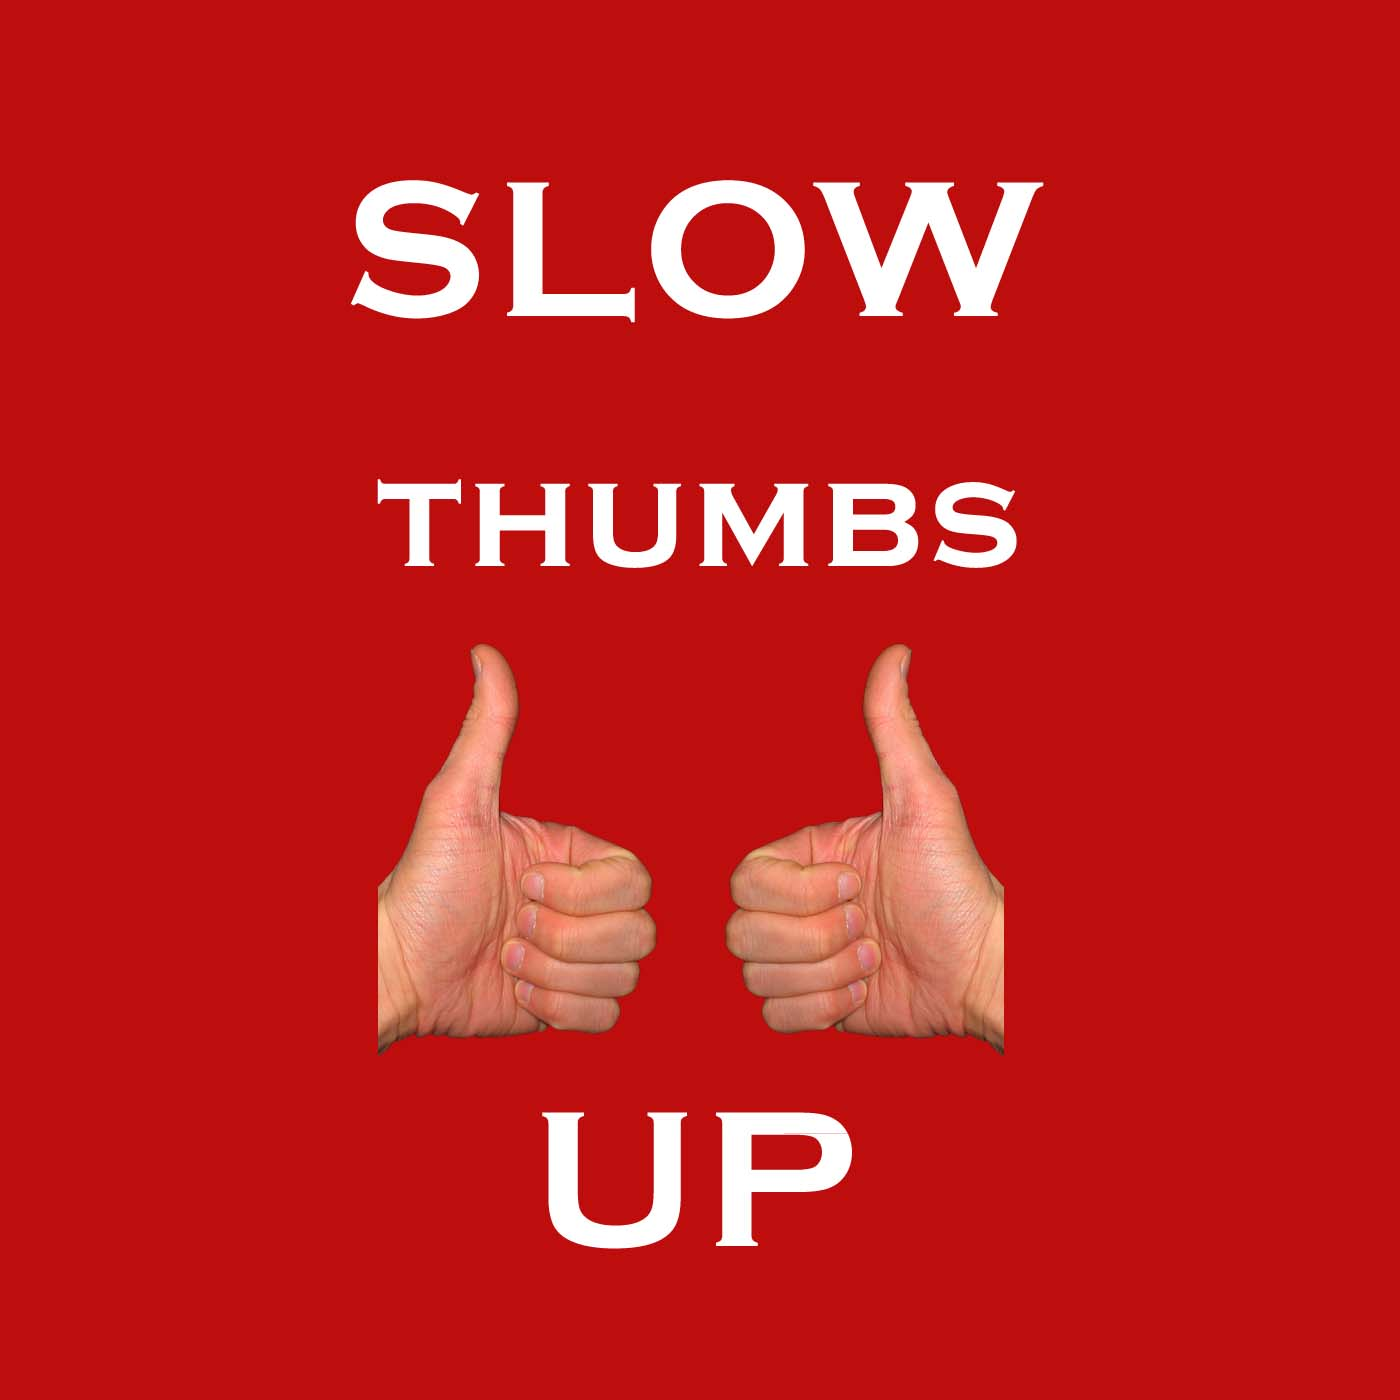 Slow Thumbs Up